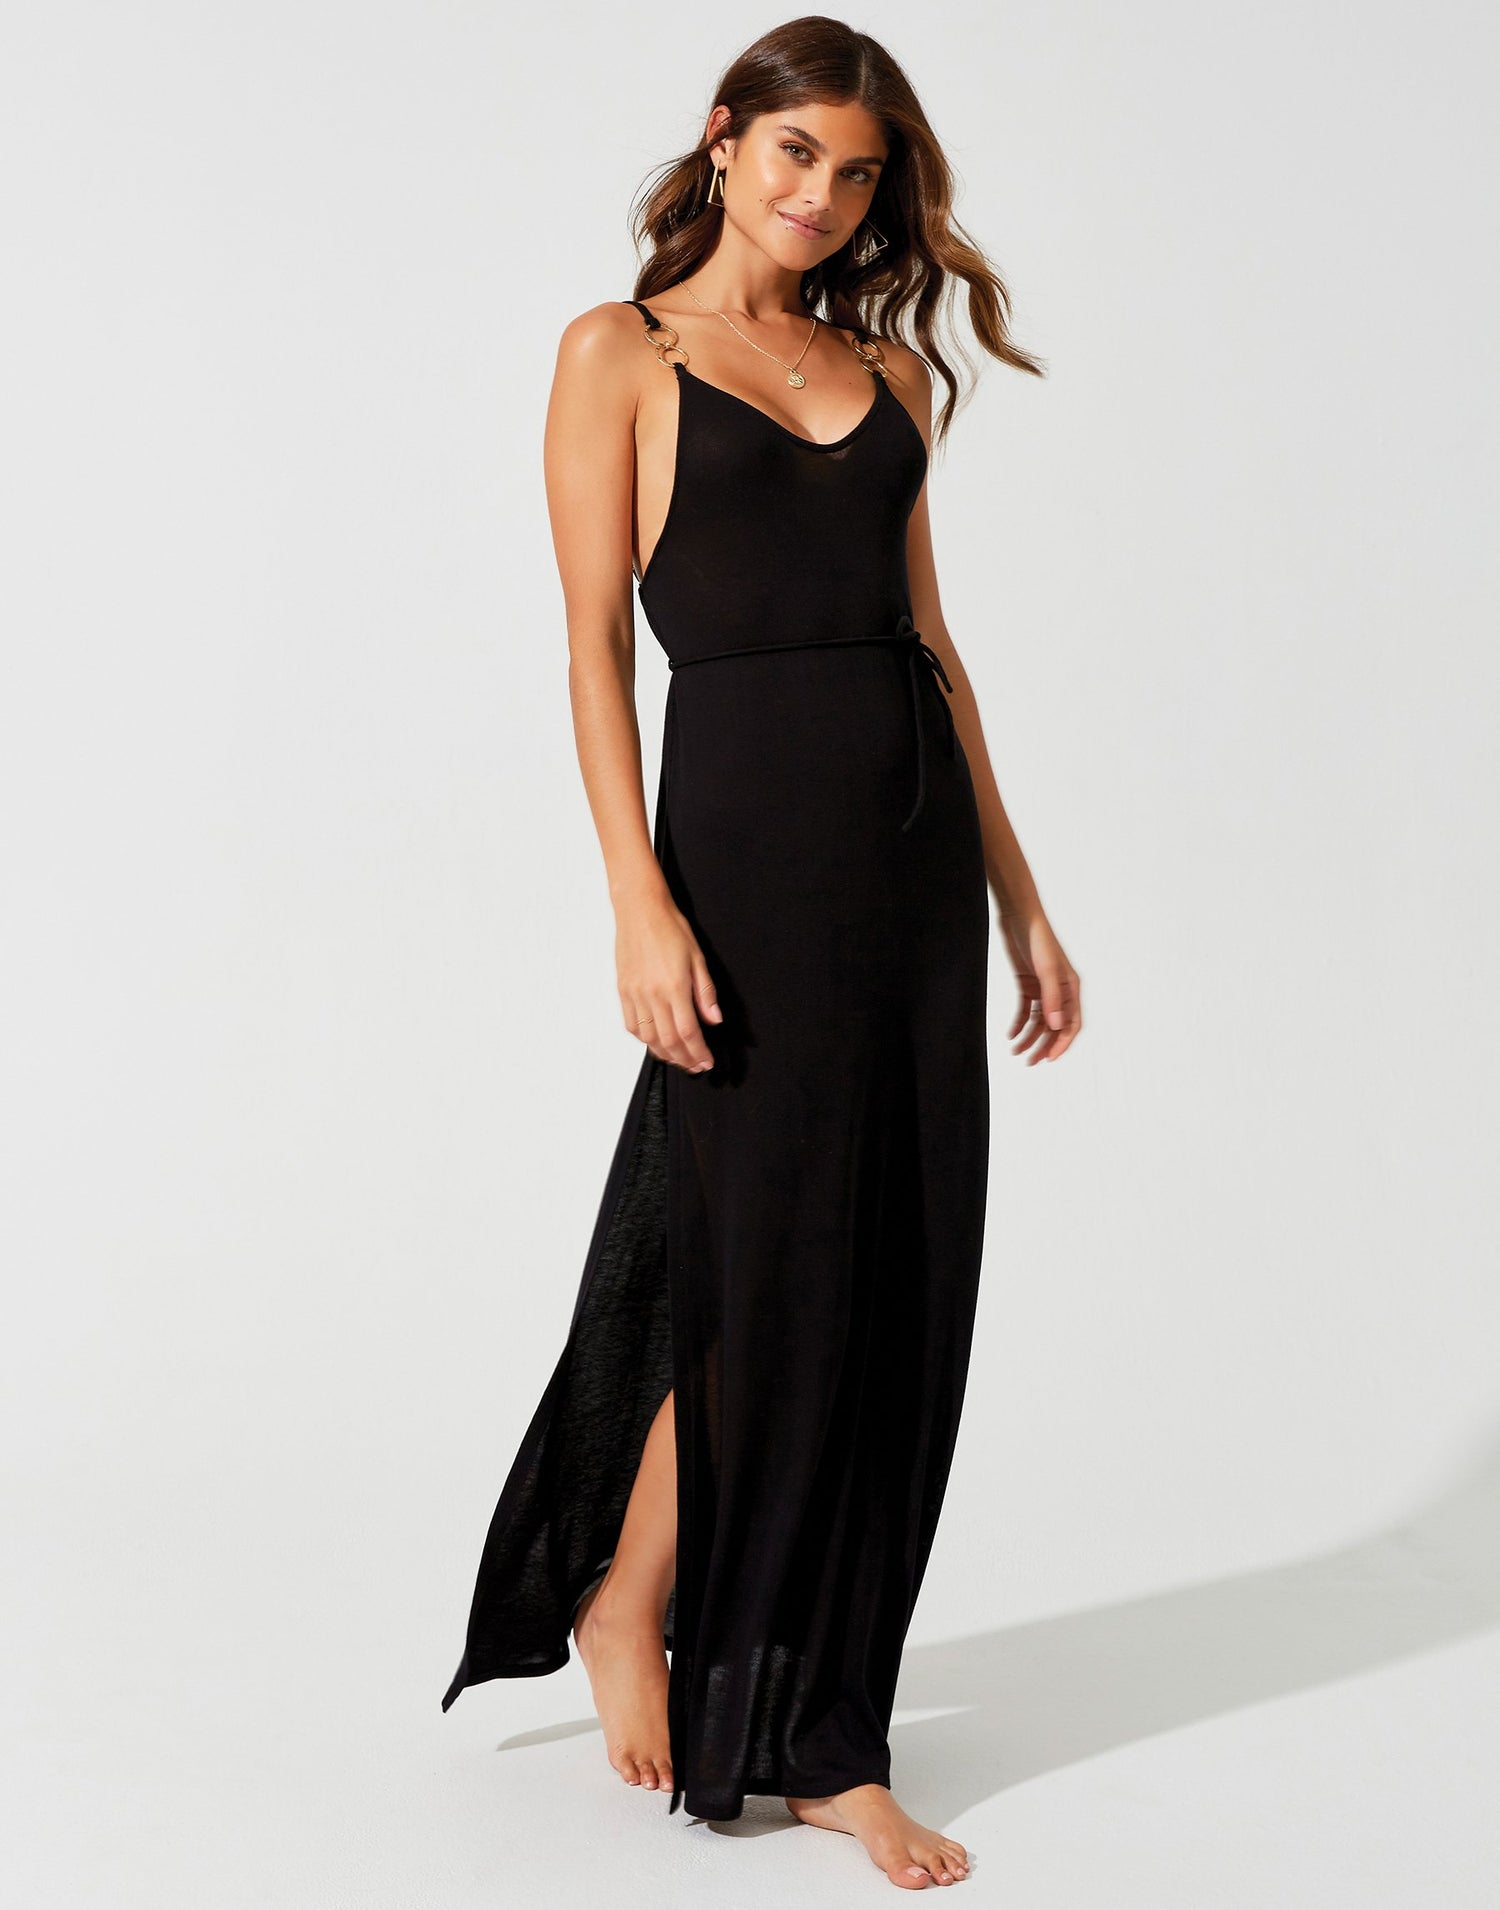 Lolo Maxi Dress in Black with Gold Hardware and Leg Slits - front view